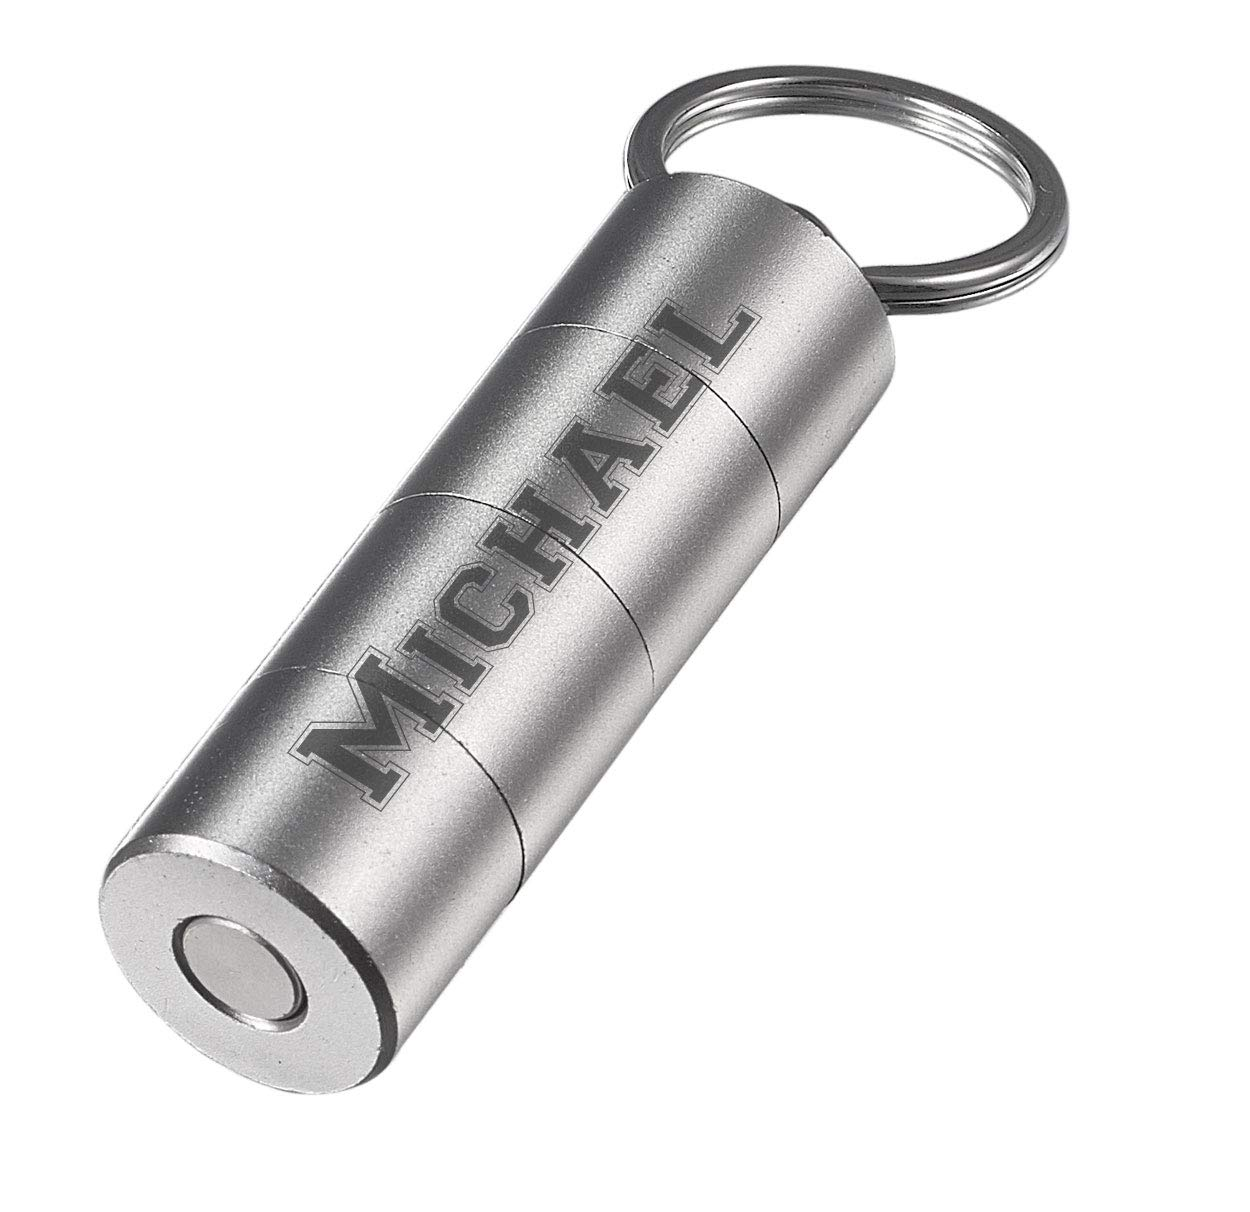 Personalized Visol Torpedo Three Cut Cigar Punch - Silver with Free Engraving by Visol